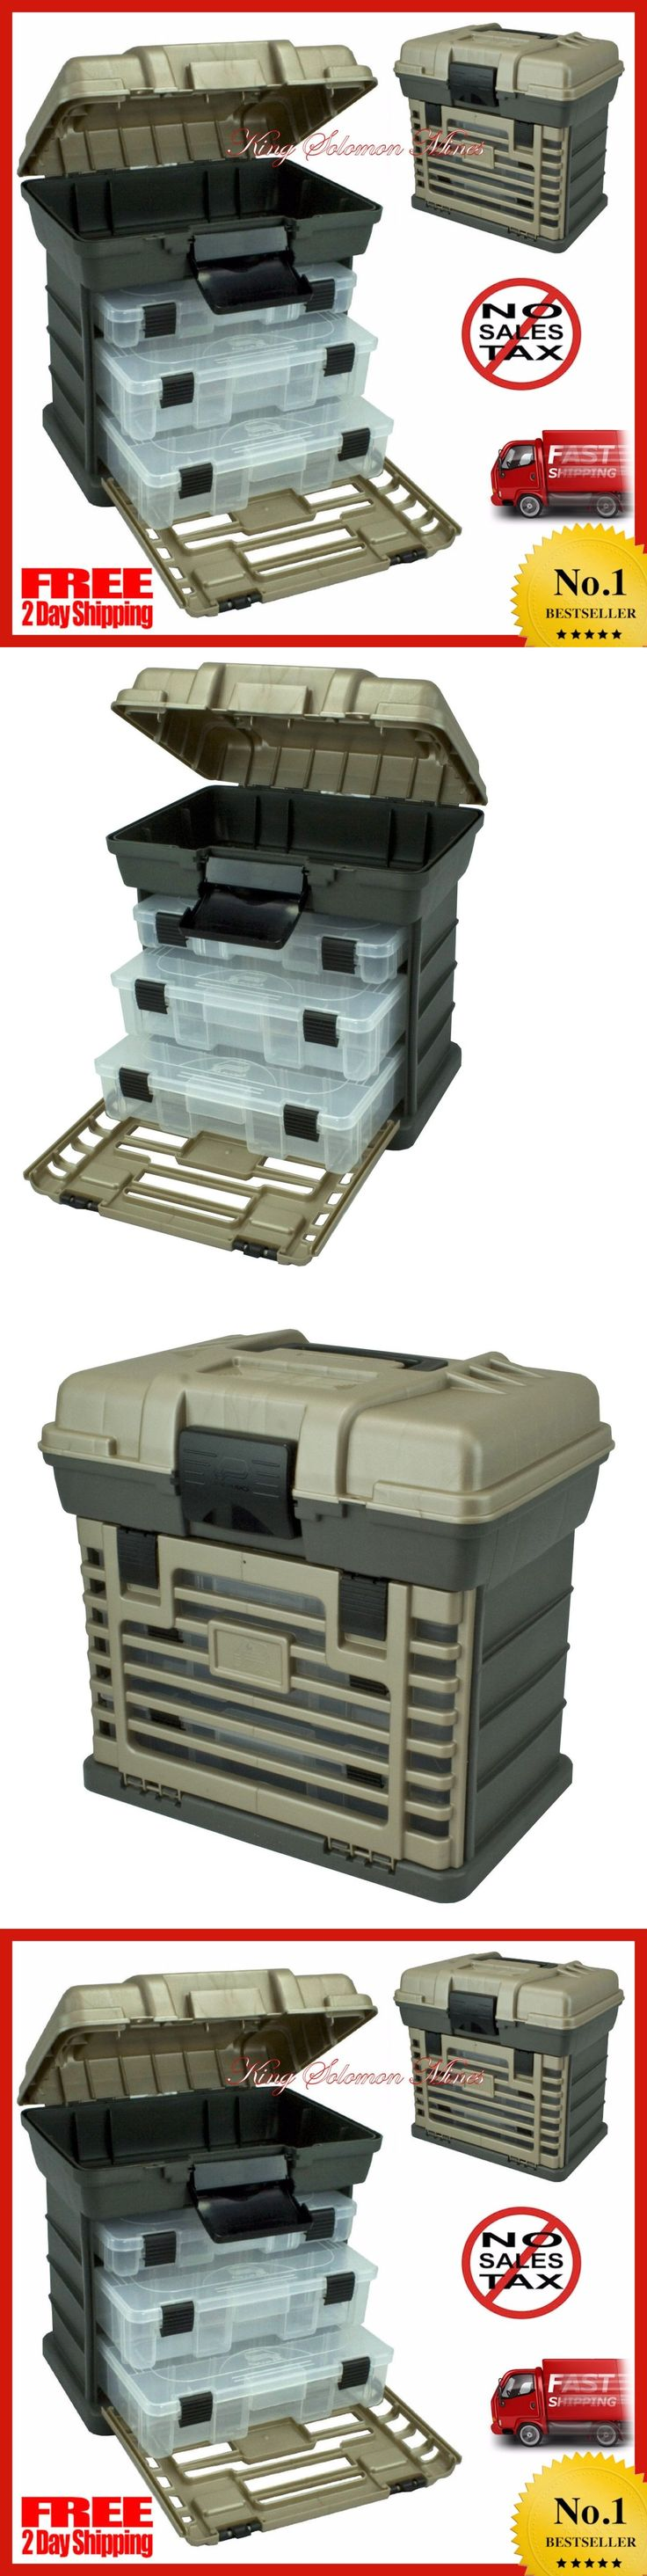 Tackle Boxes and Bags 22696: Fishing Tackle Box Plano Lures Storage Tray Bait Case Tool Organizer Bulk Drawer -> BUY IT NOW ONLY: $31.76 on eBay!